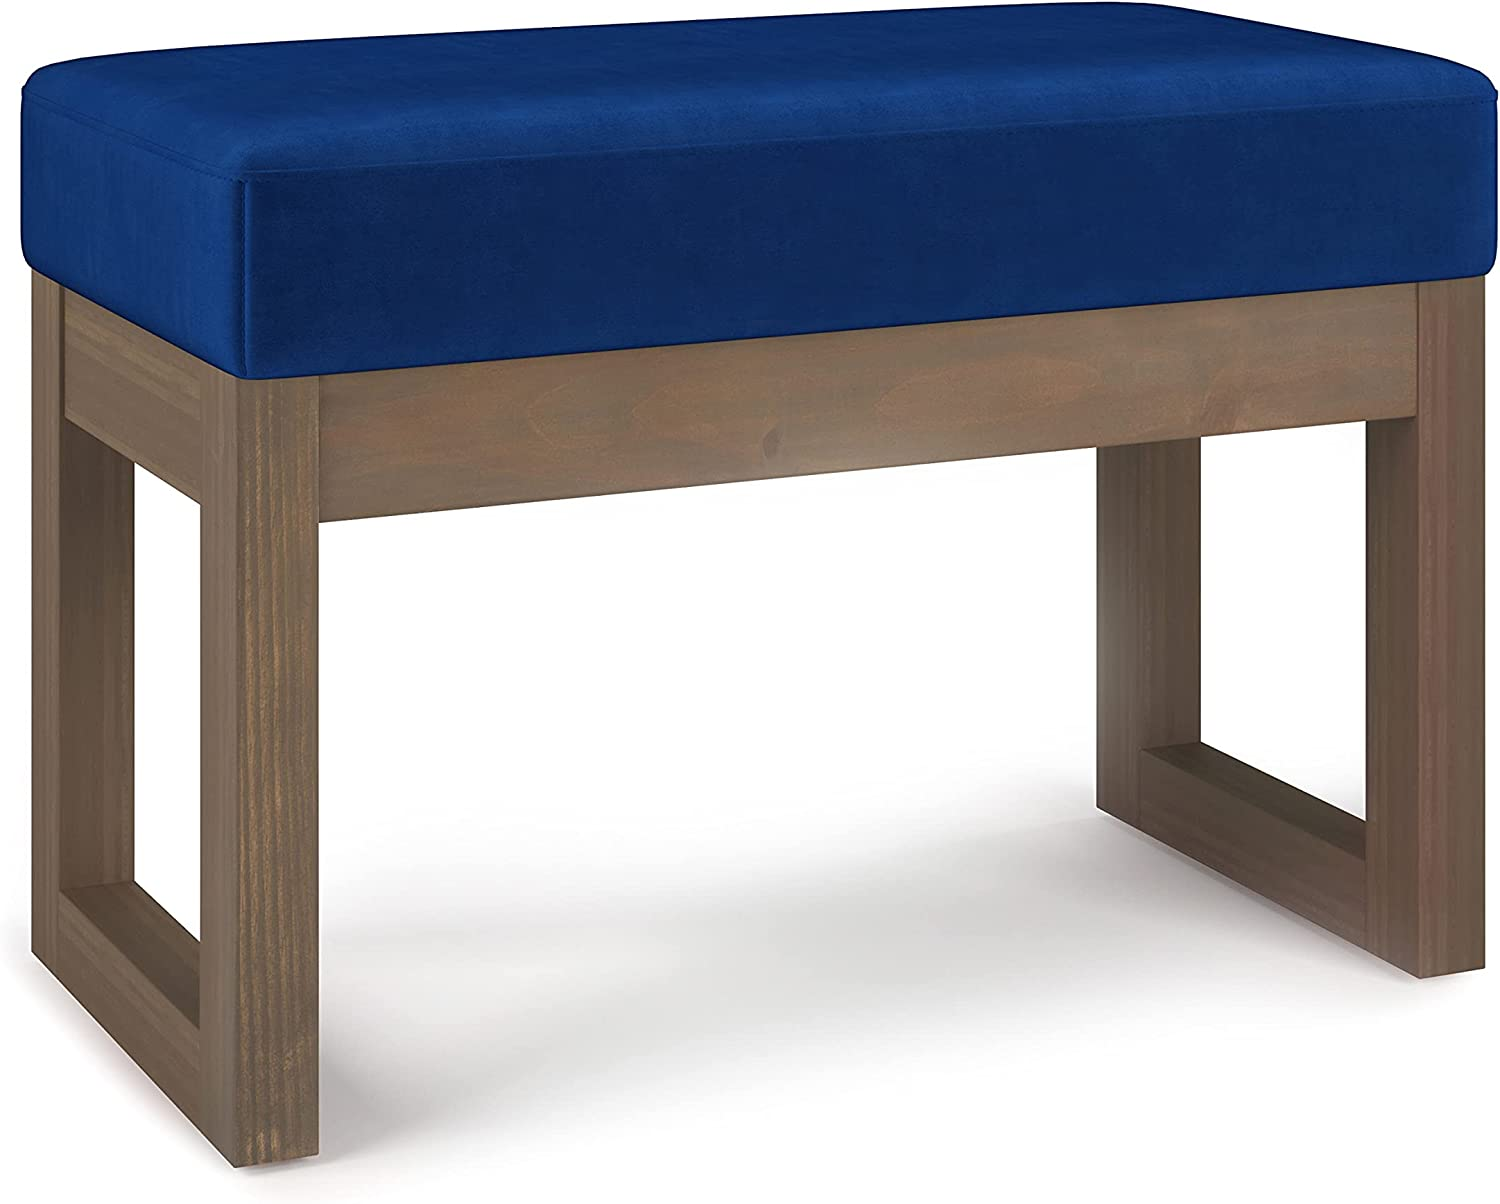 SIMPLIHOME Milltown 26 inch Wide Contemporary Rectangle Footstool Ottoman Bench in Blue Velvet, for Living Room, Bedroom